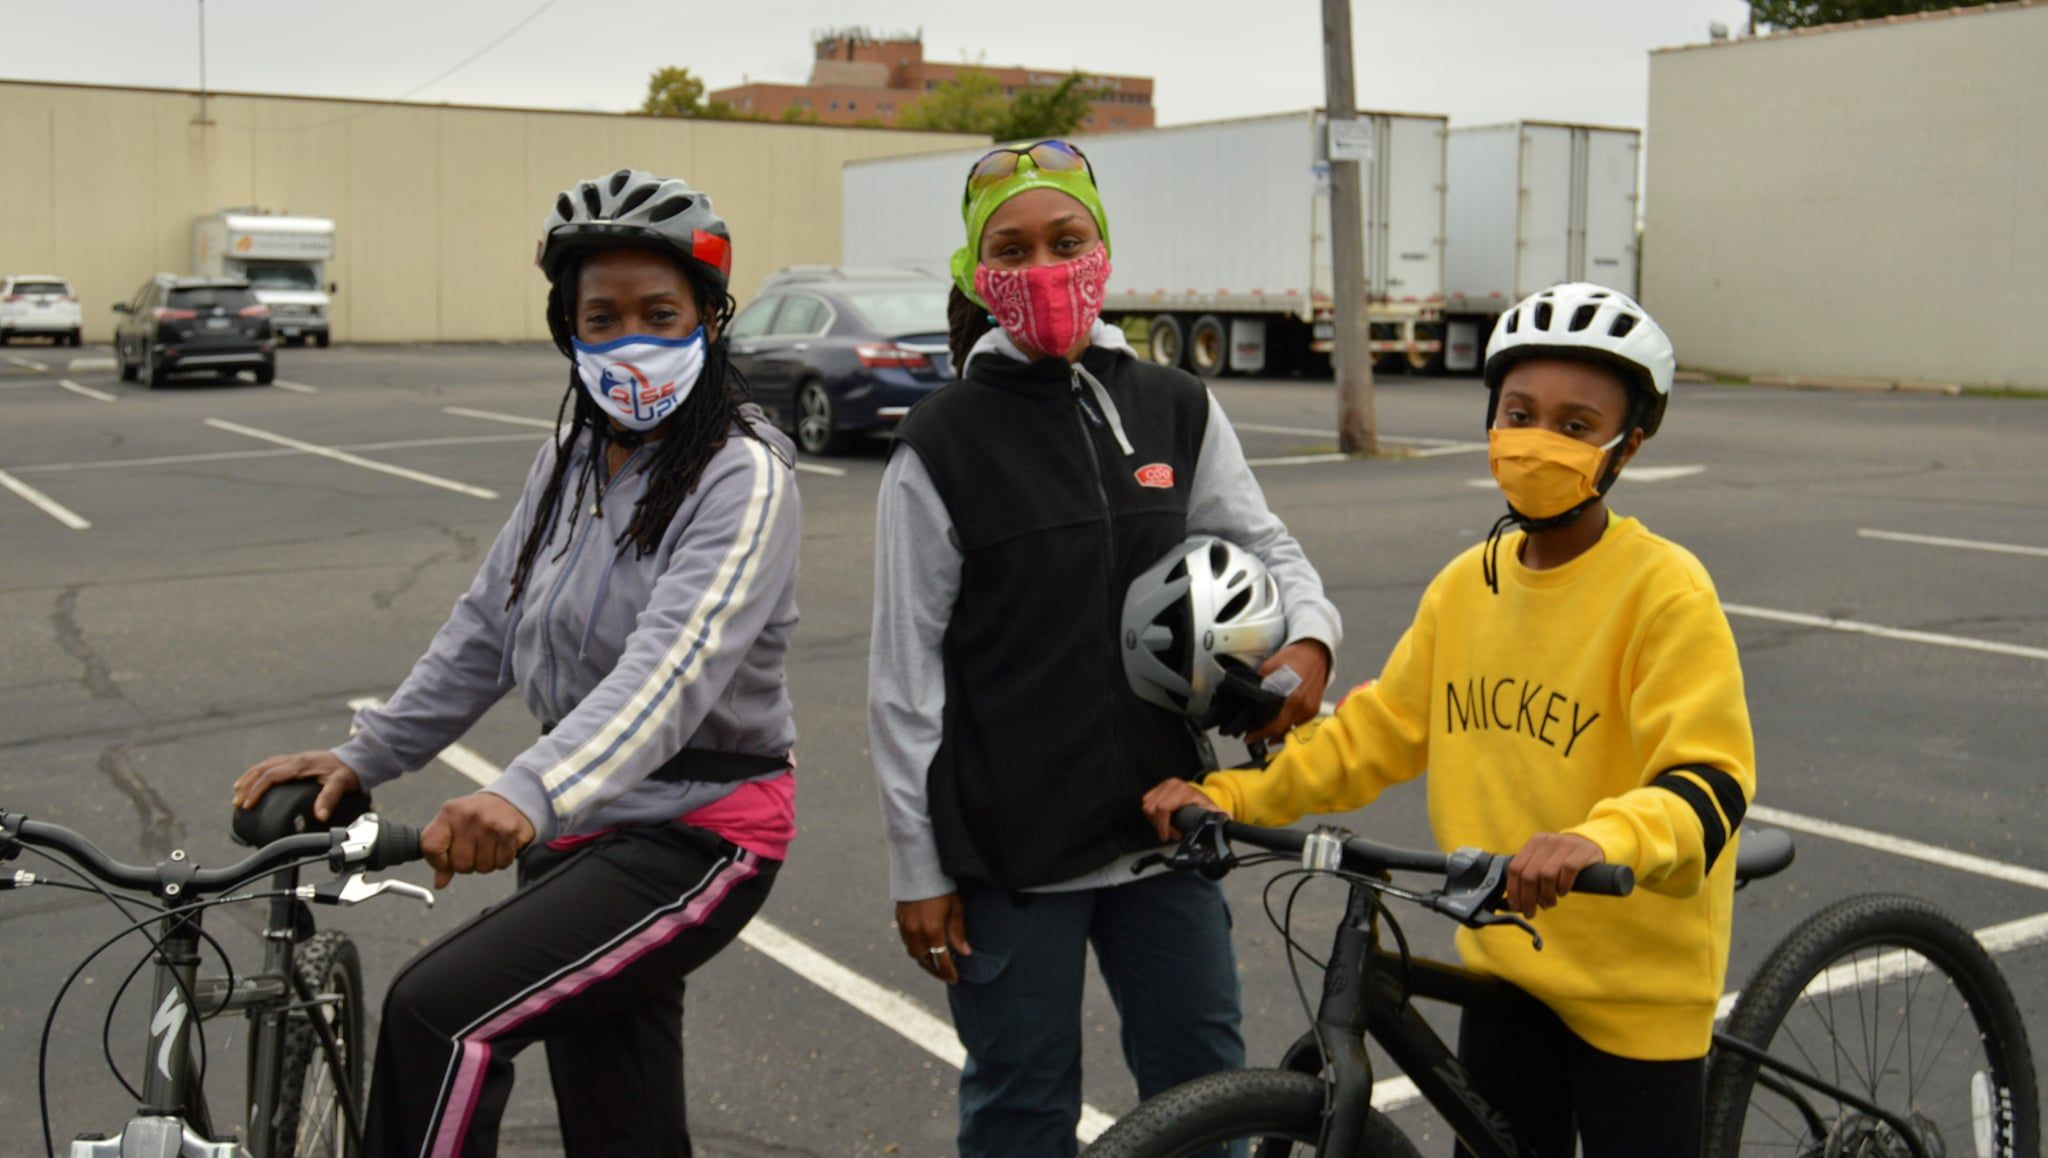 Recent Slow Roll Event Promotes Social Justice and Community Building through Bike Riding